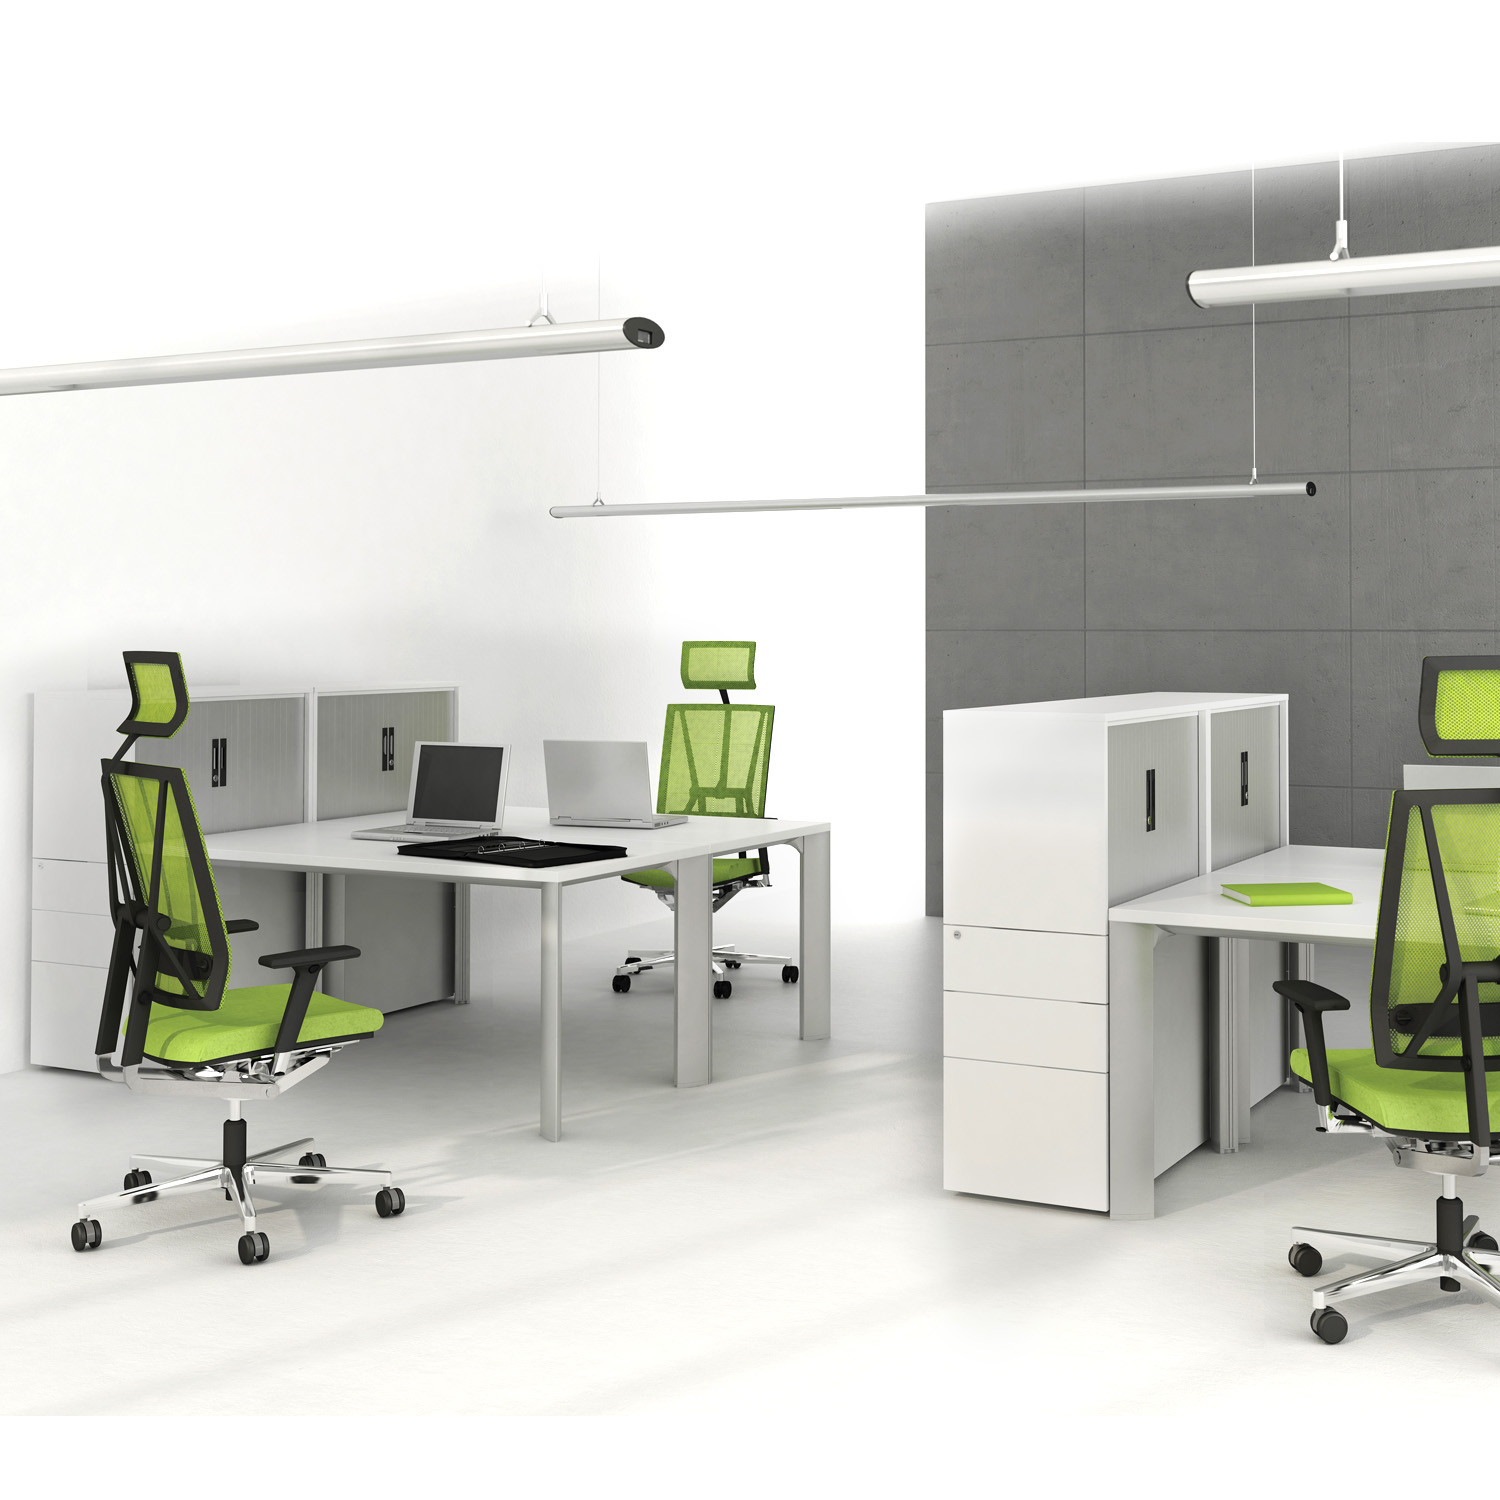 Freedom G3 Office Pedestals